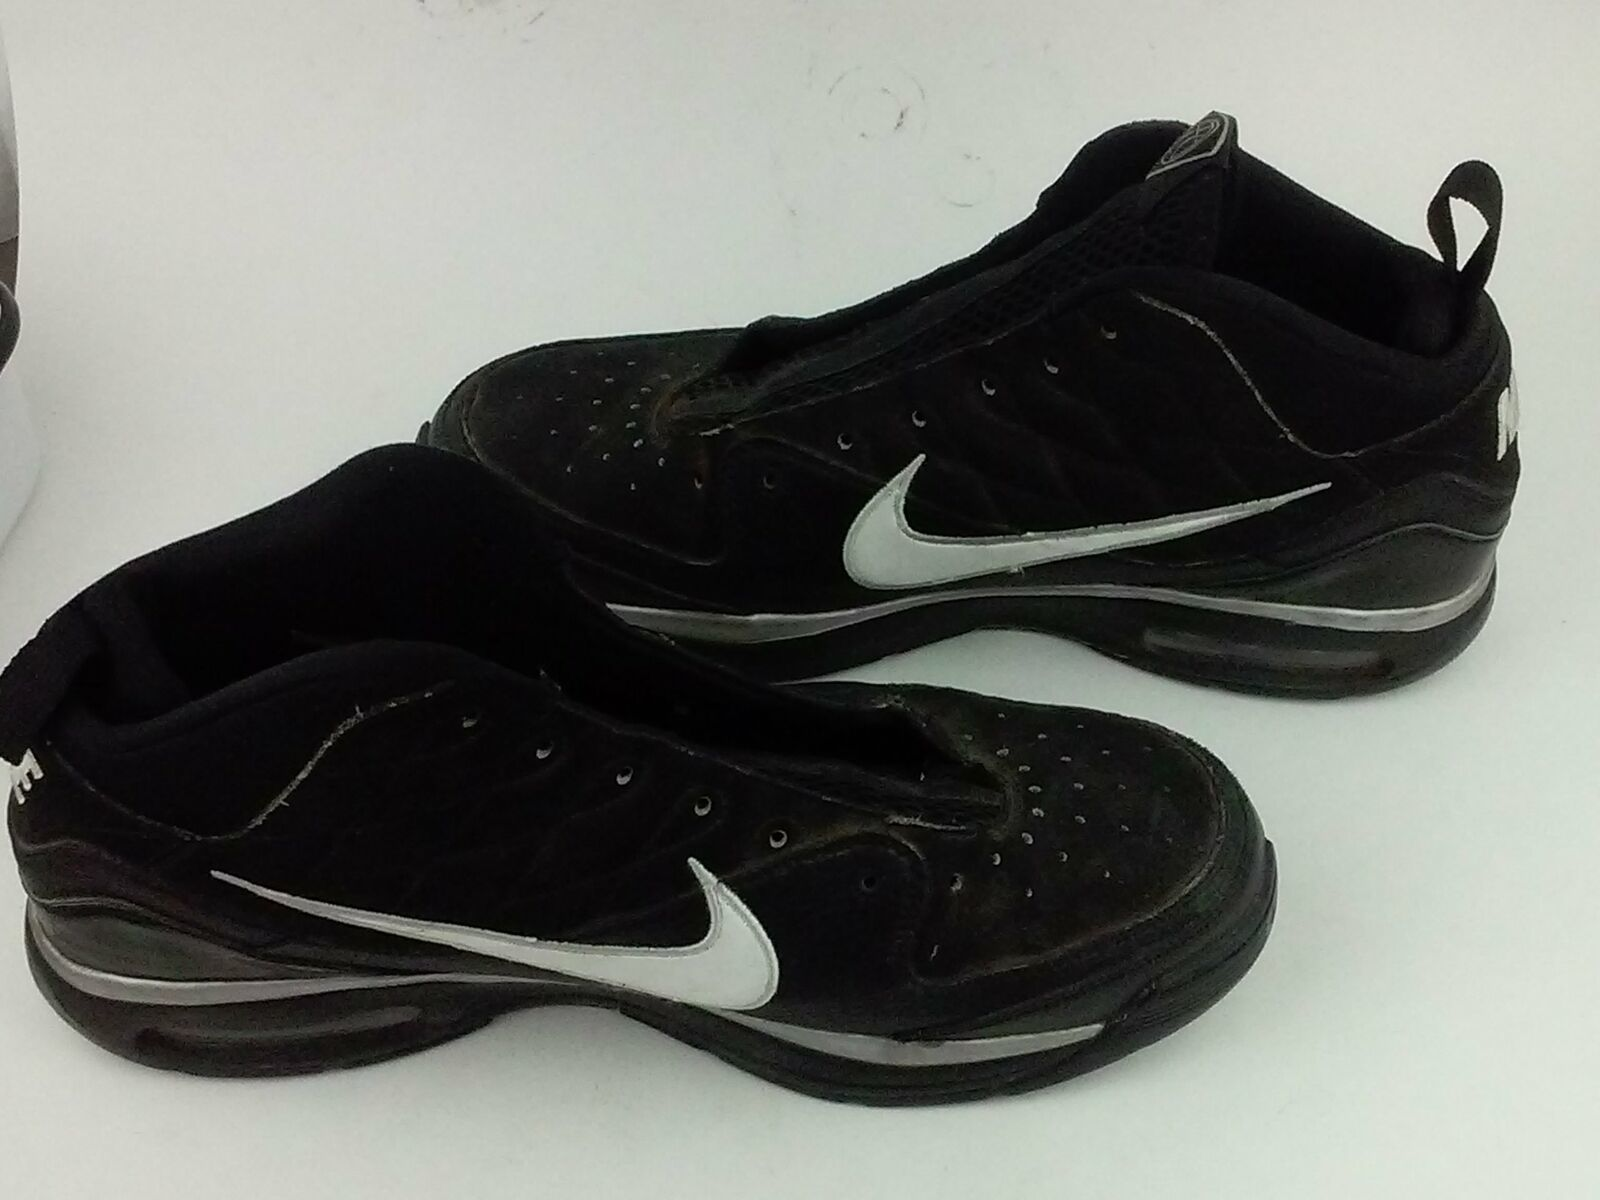 890578b64a4 ... Nike Mens Blue Chip 367182 011 Black With White Swoosh Basketball Shoes  ...